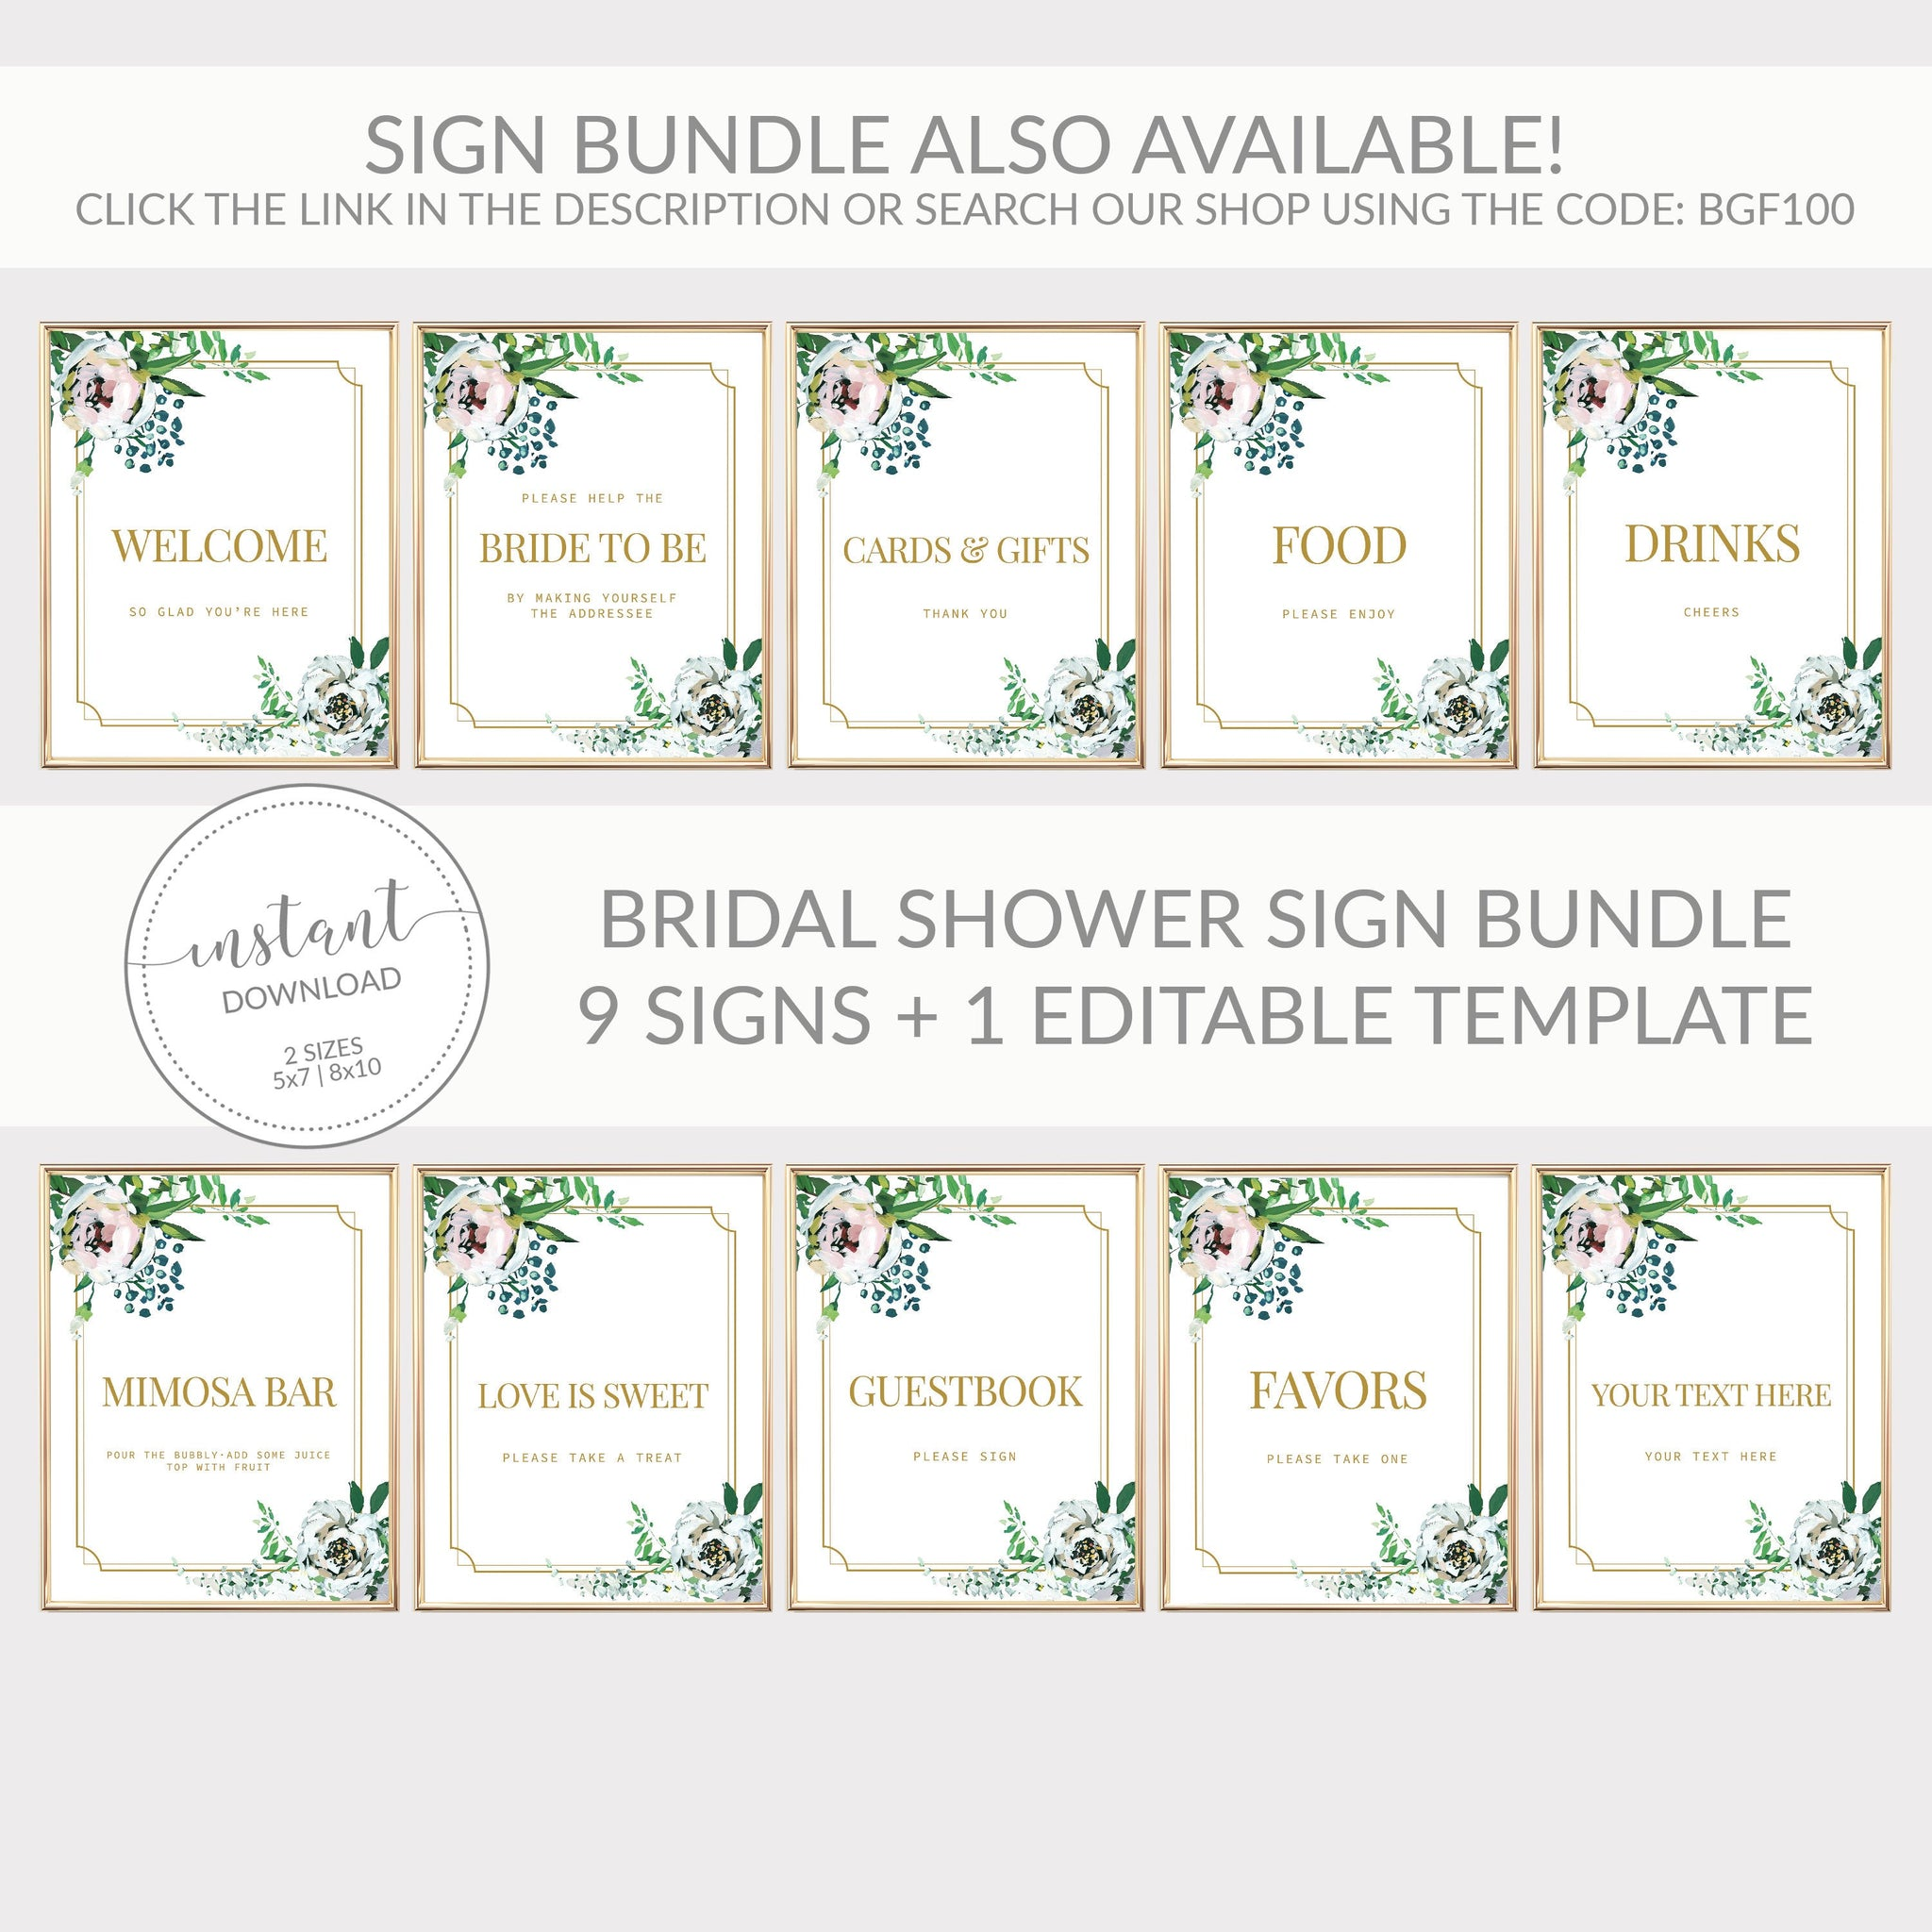 Blush Floral Greenery Mimosa Bar Sign Printable INSTANT DOWNLOAD, Wedding Decoration, Gold Bridal Shower Brunch Sign Bubbly Bar - BGF100